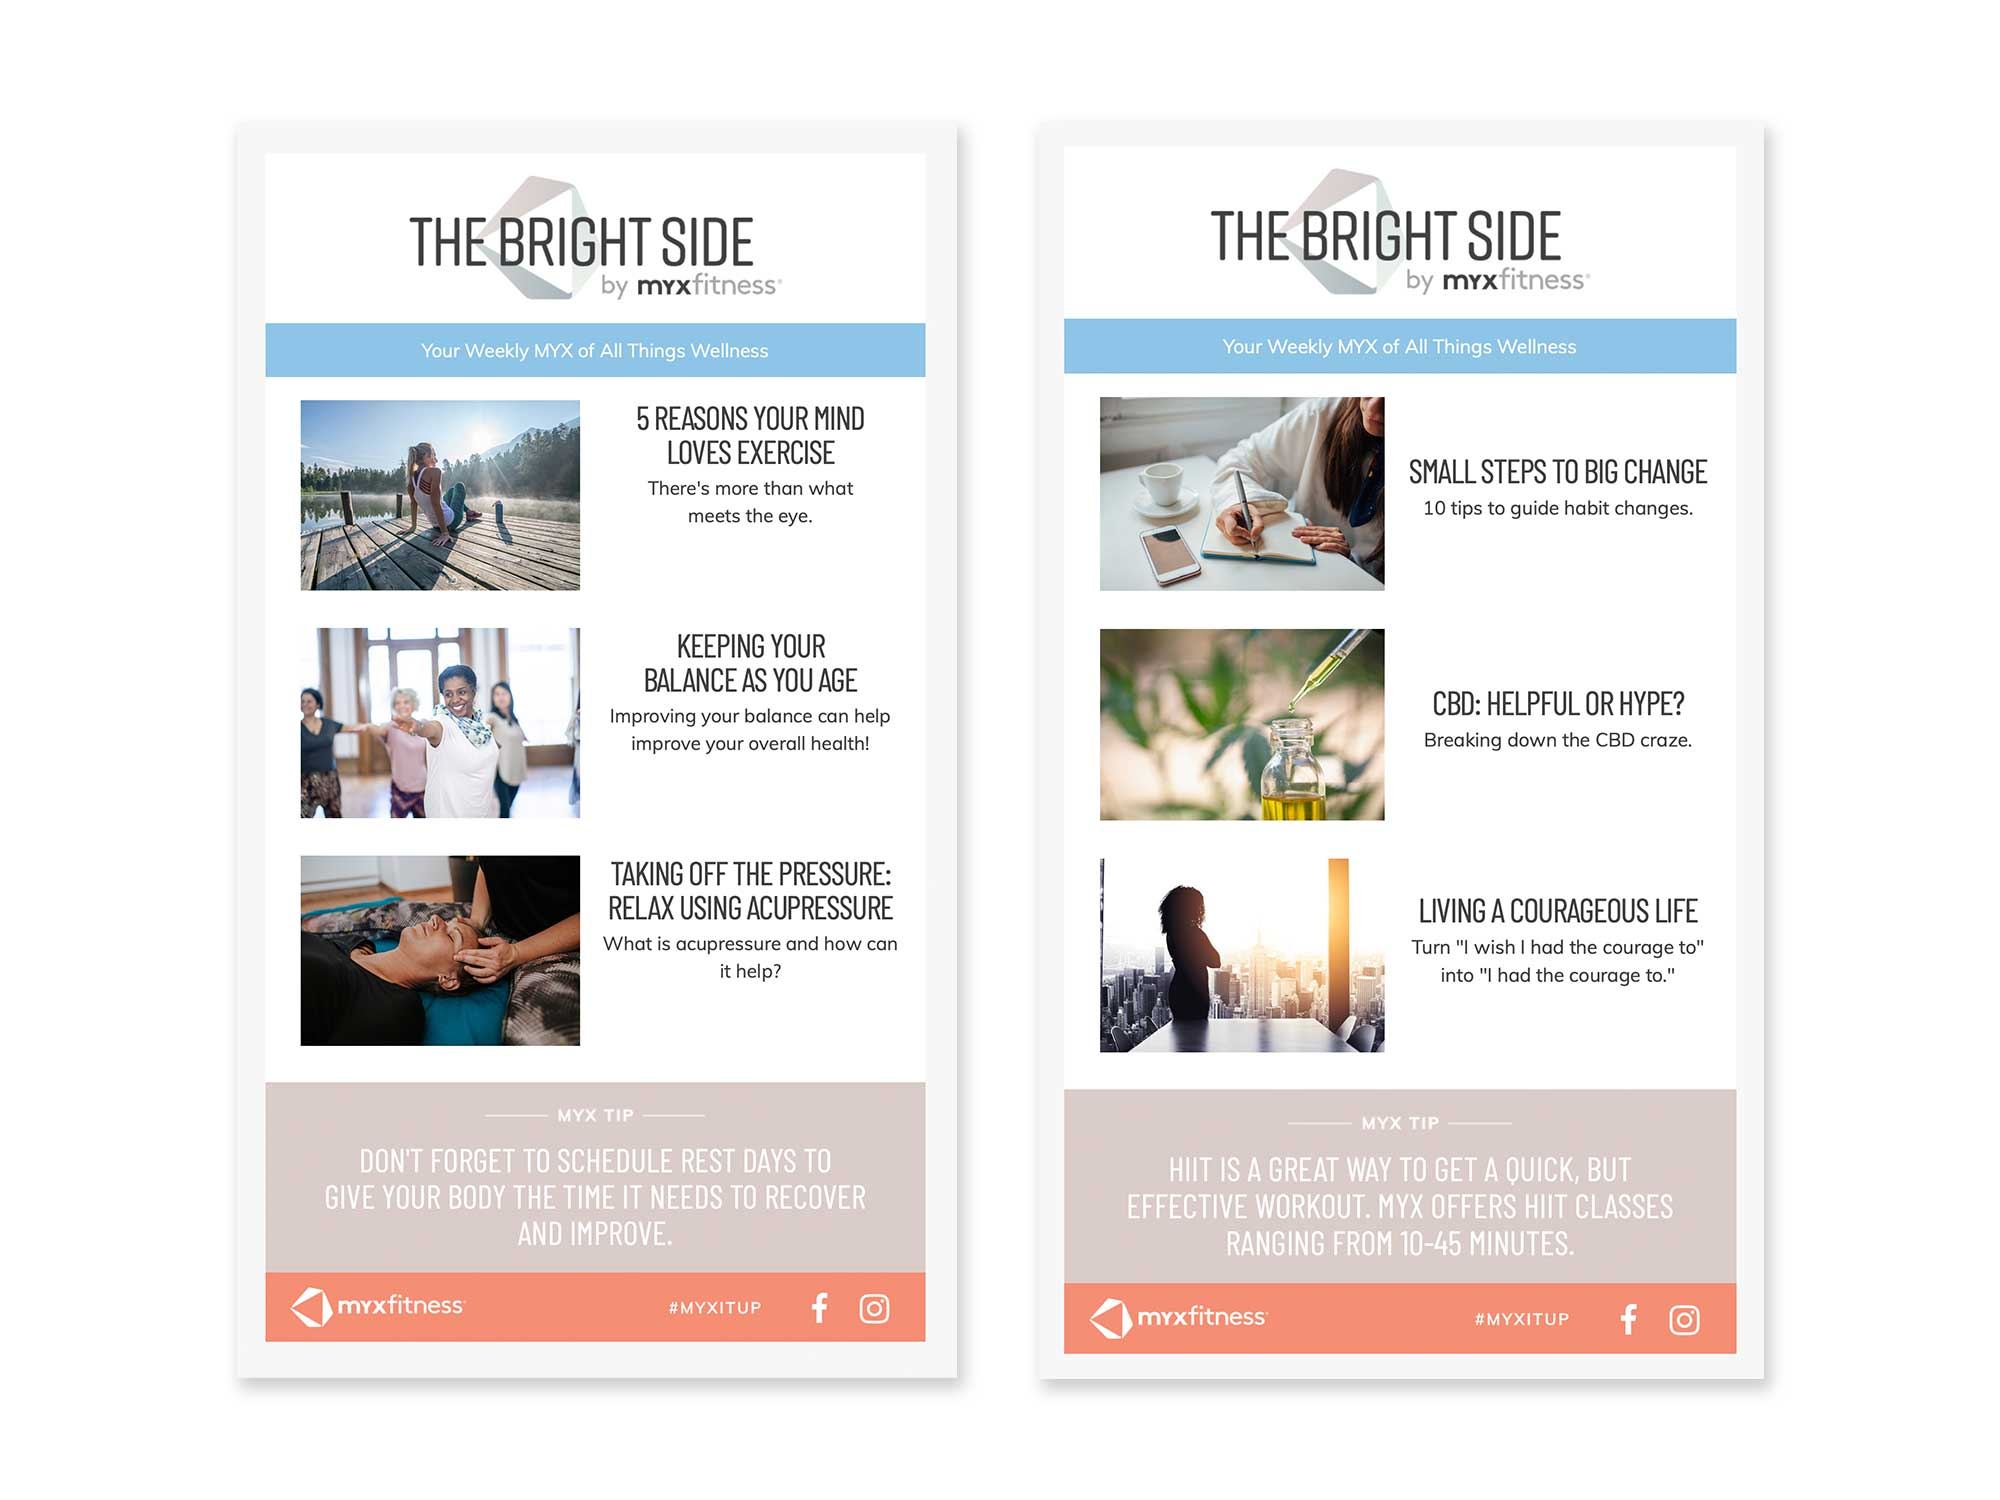 MYXfitness The Bright Side weekly email newsletter